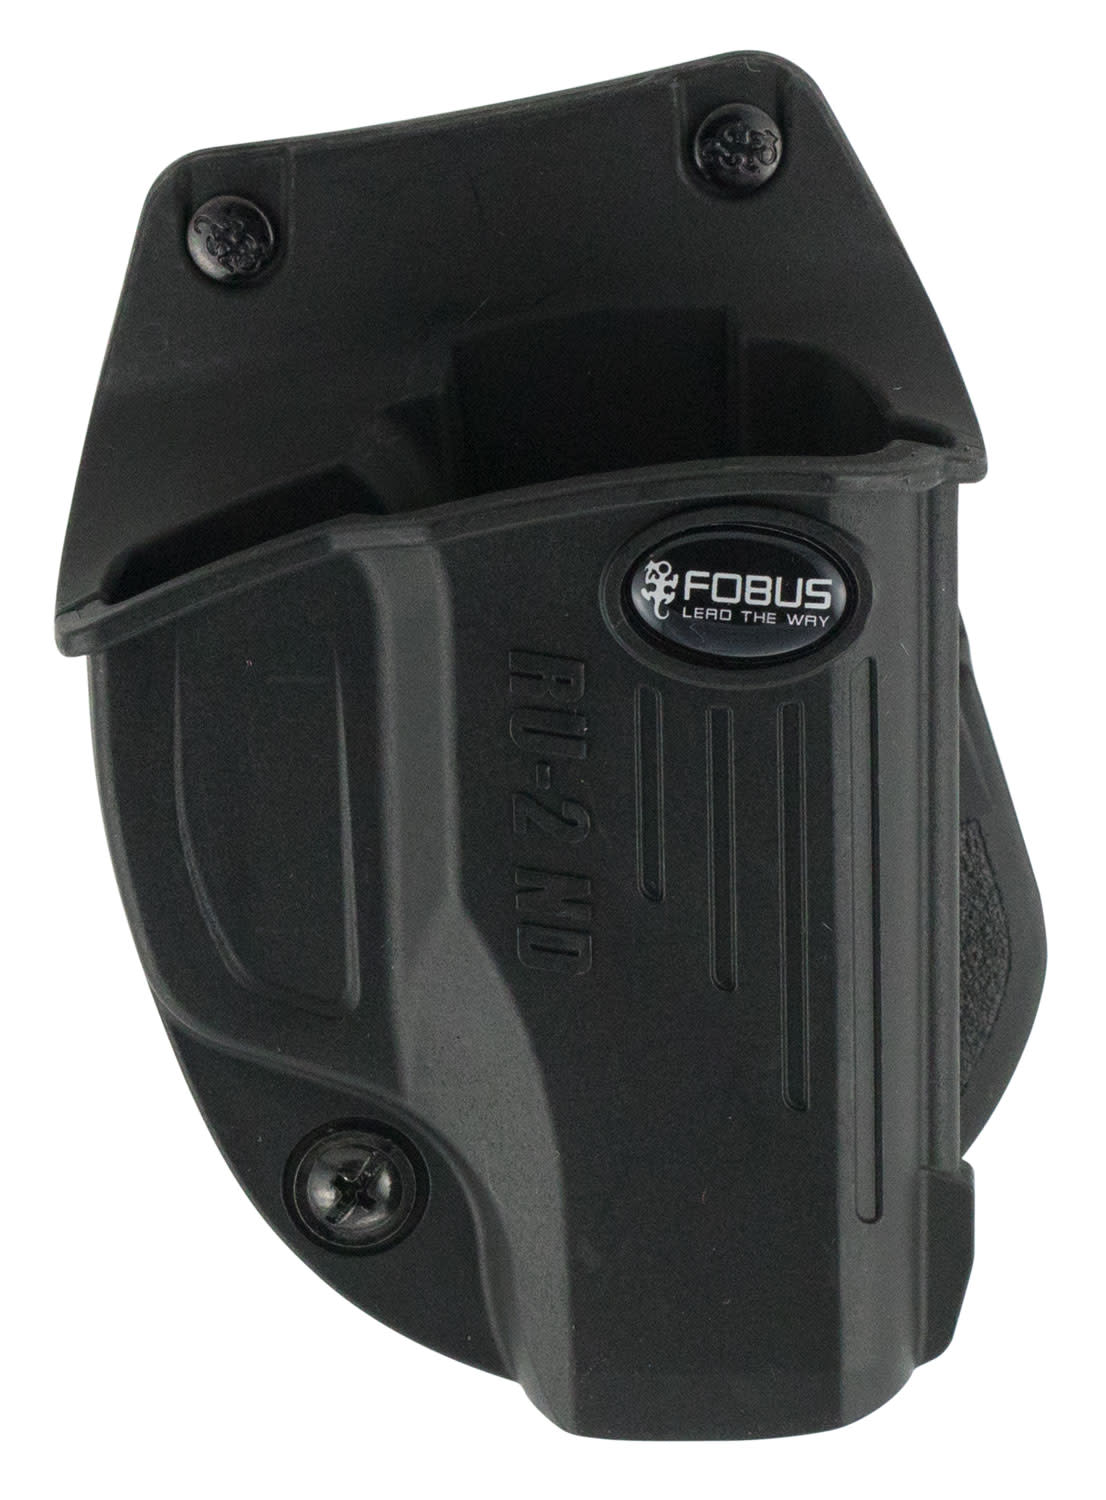 Fobus Evolution Paddle Holster - FNP9/40 and FNX 9/40